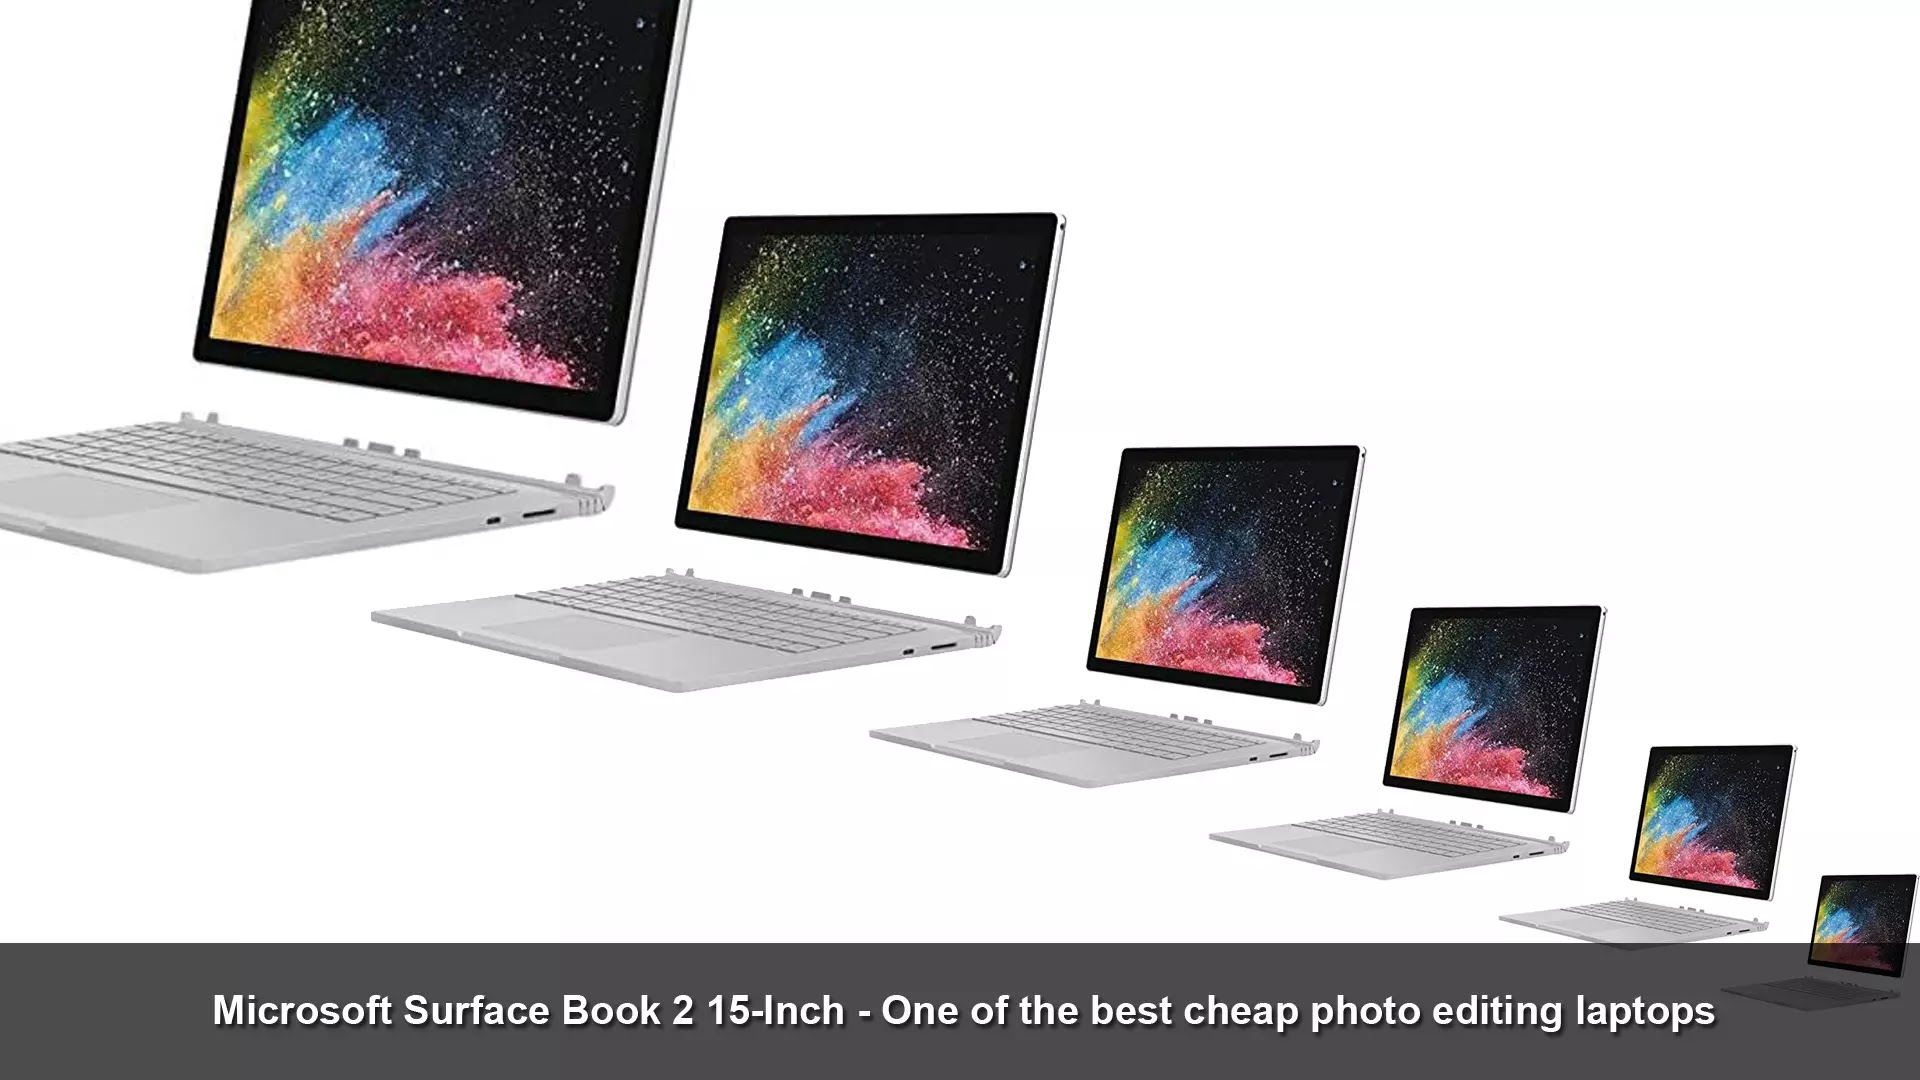 Microsoft Surface Book 2 15-Inch - one of the best cheap photo editing laptops